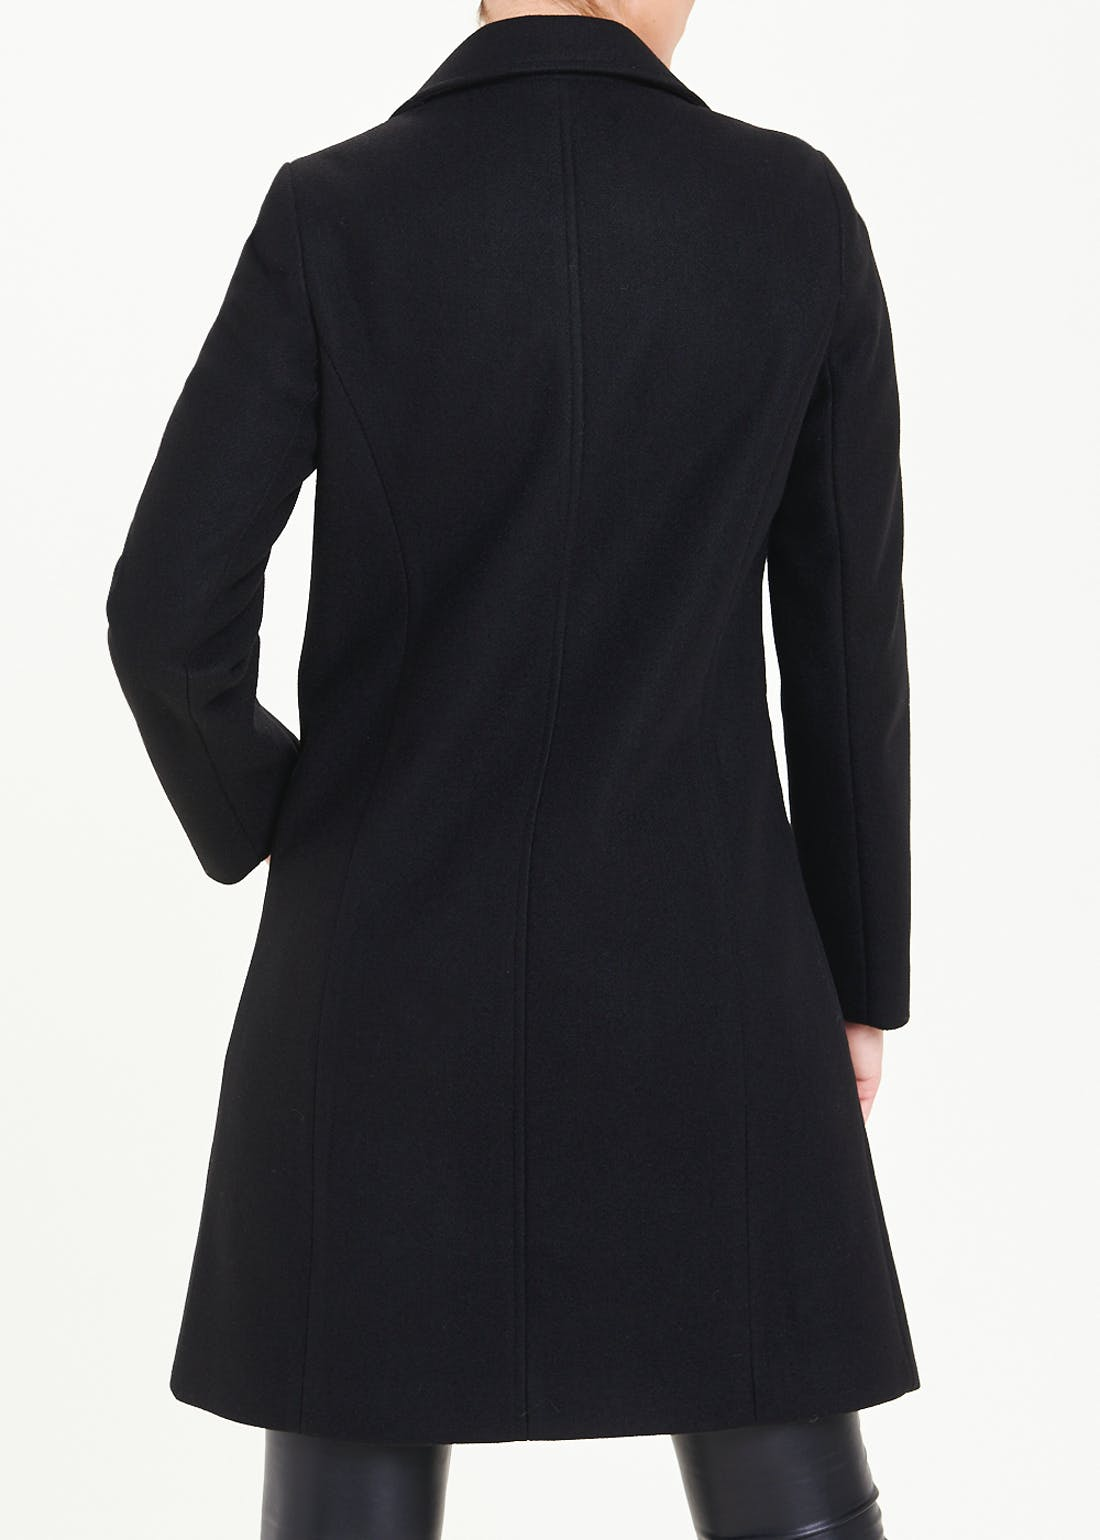 Metal Trim Tailored Double Breasted Coat